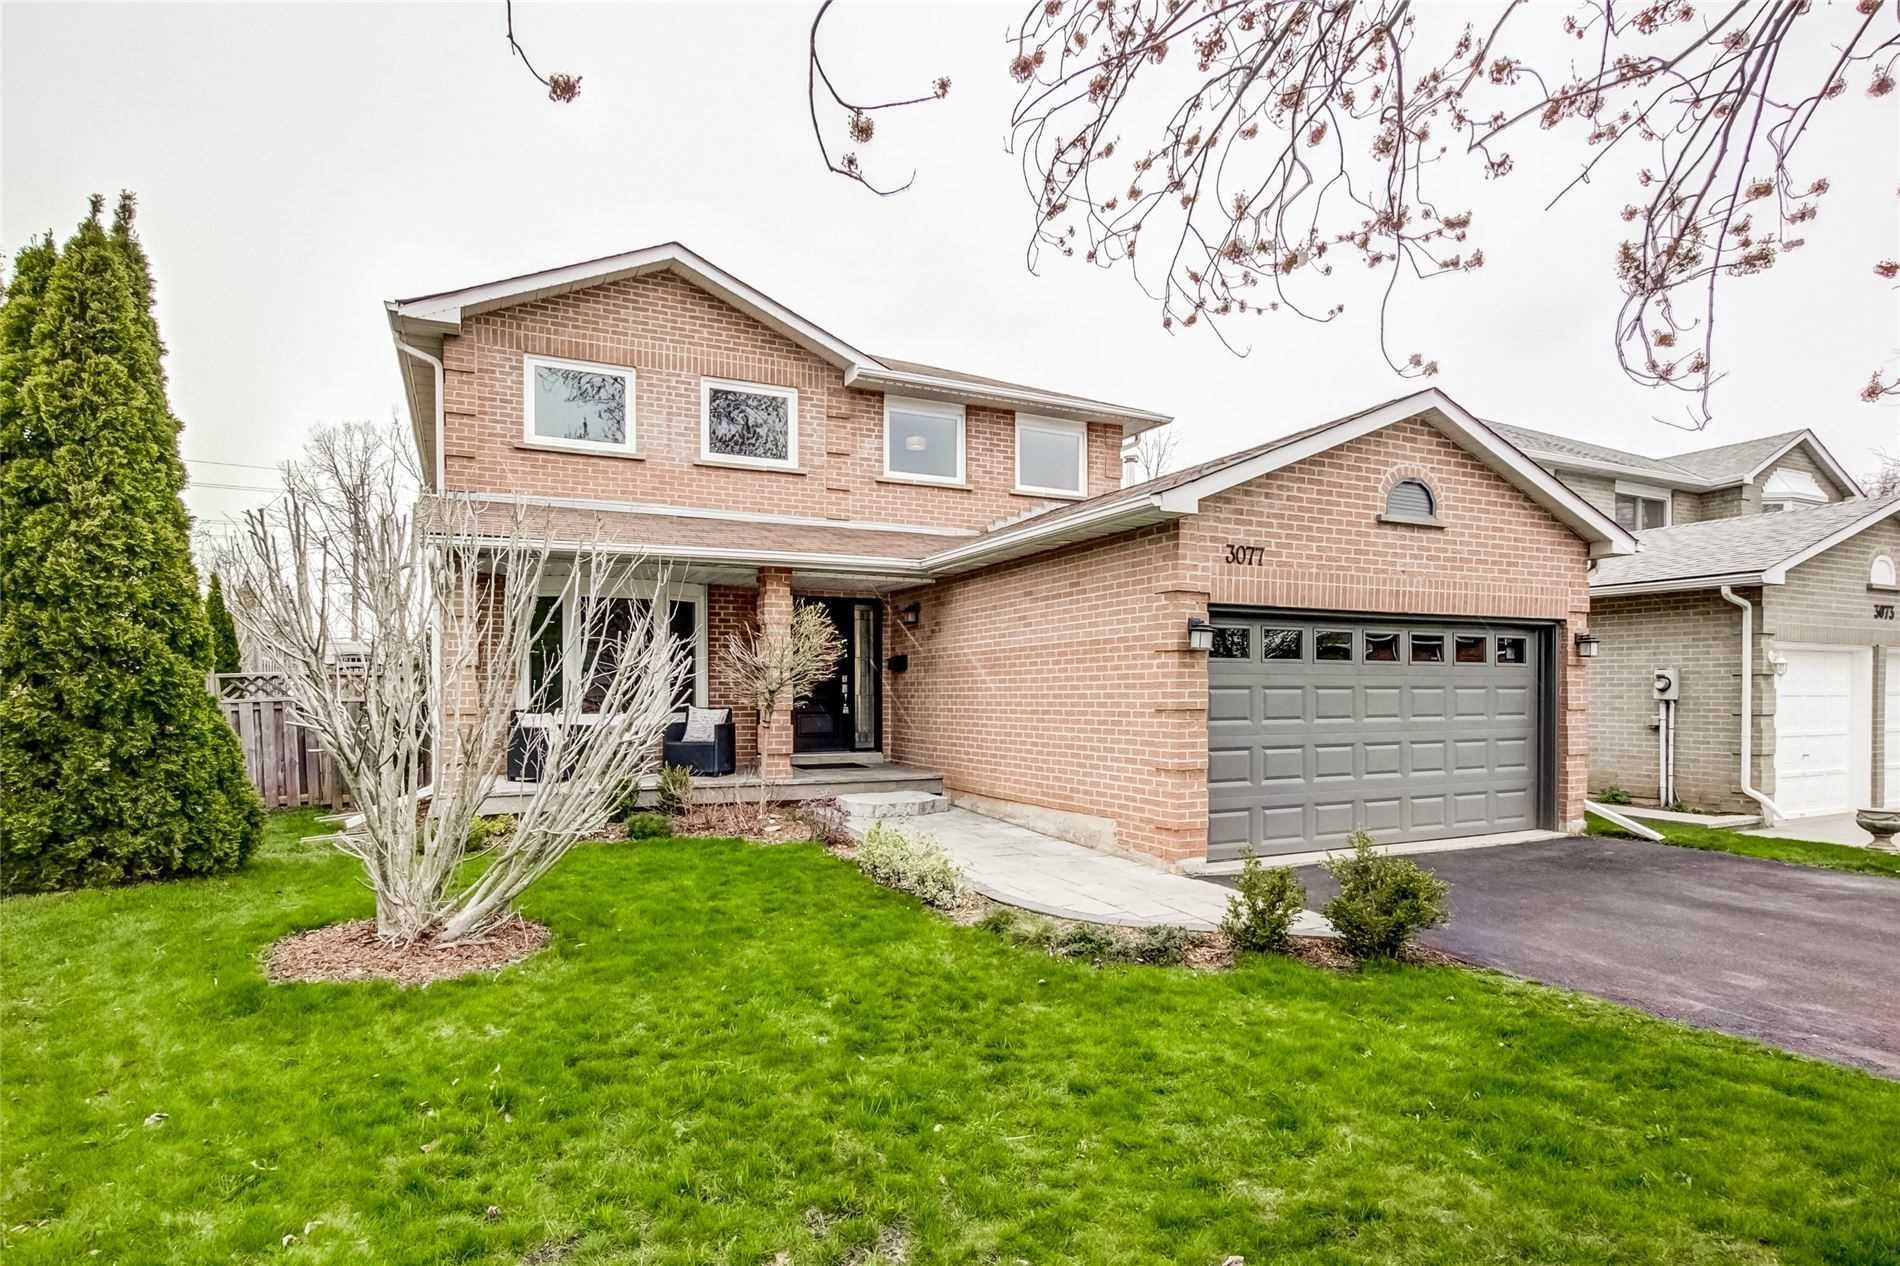 Main Photo: 3077 Swansea Drive in Oakville: Bronte West House (2-Storey) for lease : MLS®# W5281335